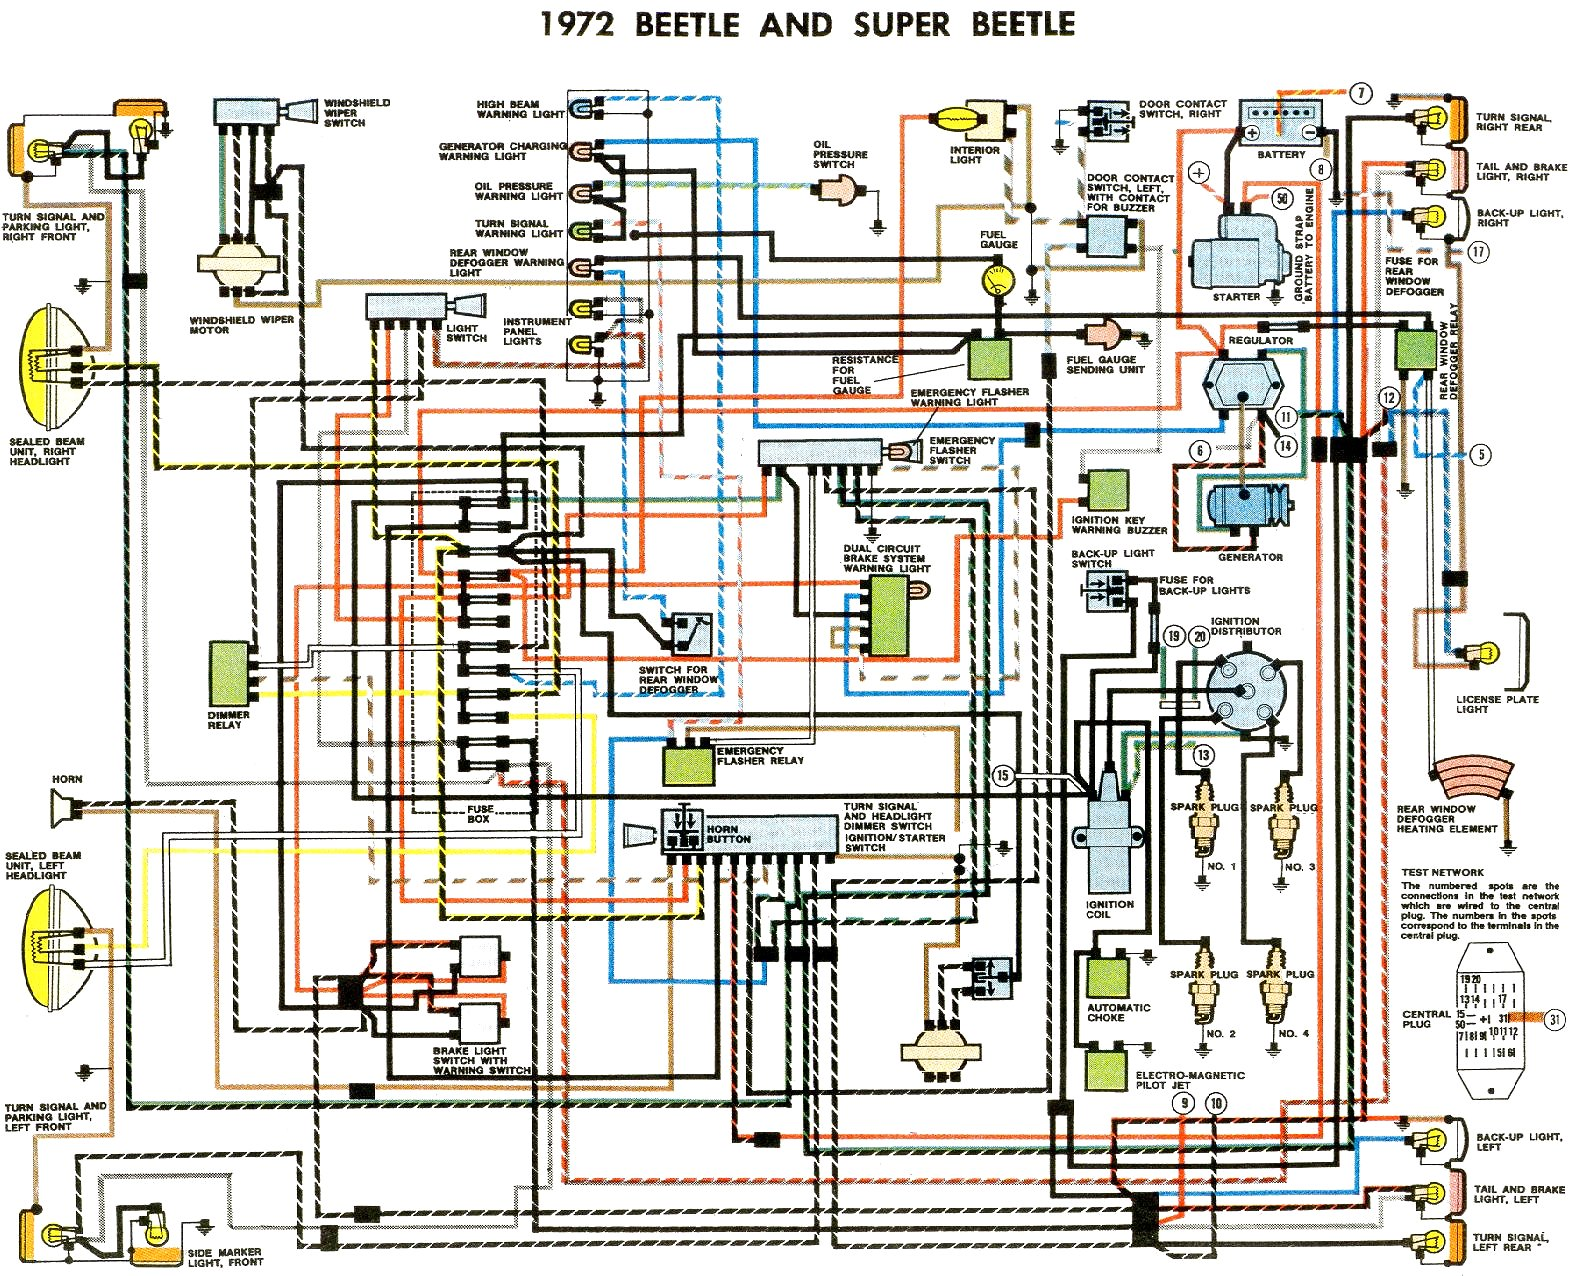 bug_72 2004 jetta wiring diagram 2000 vw jetta wiring diagram \u2022 wiring  at mifinder.co